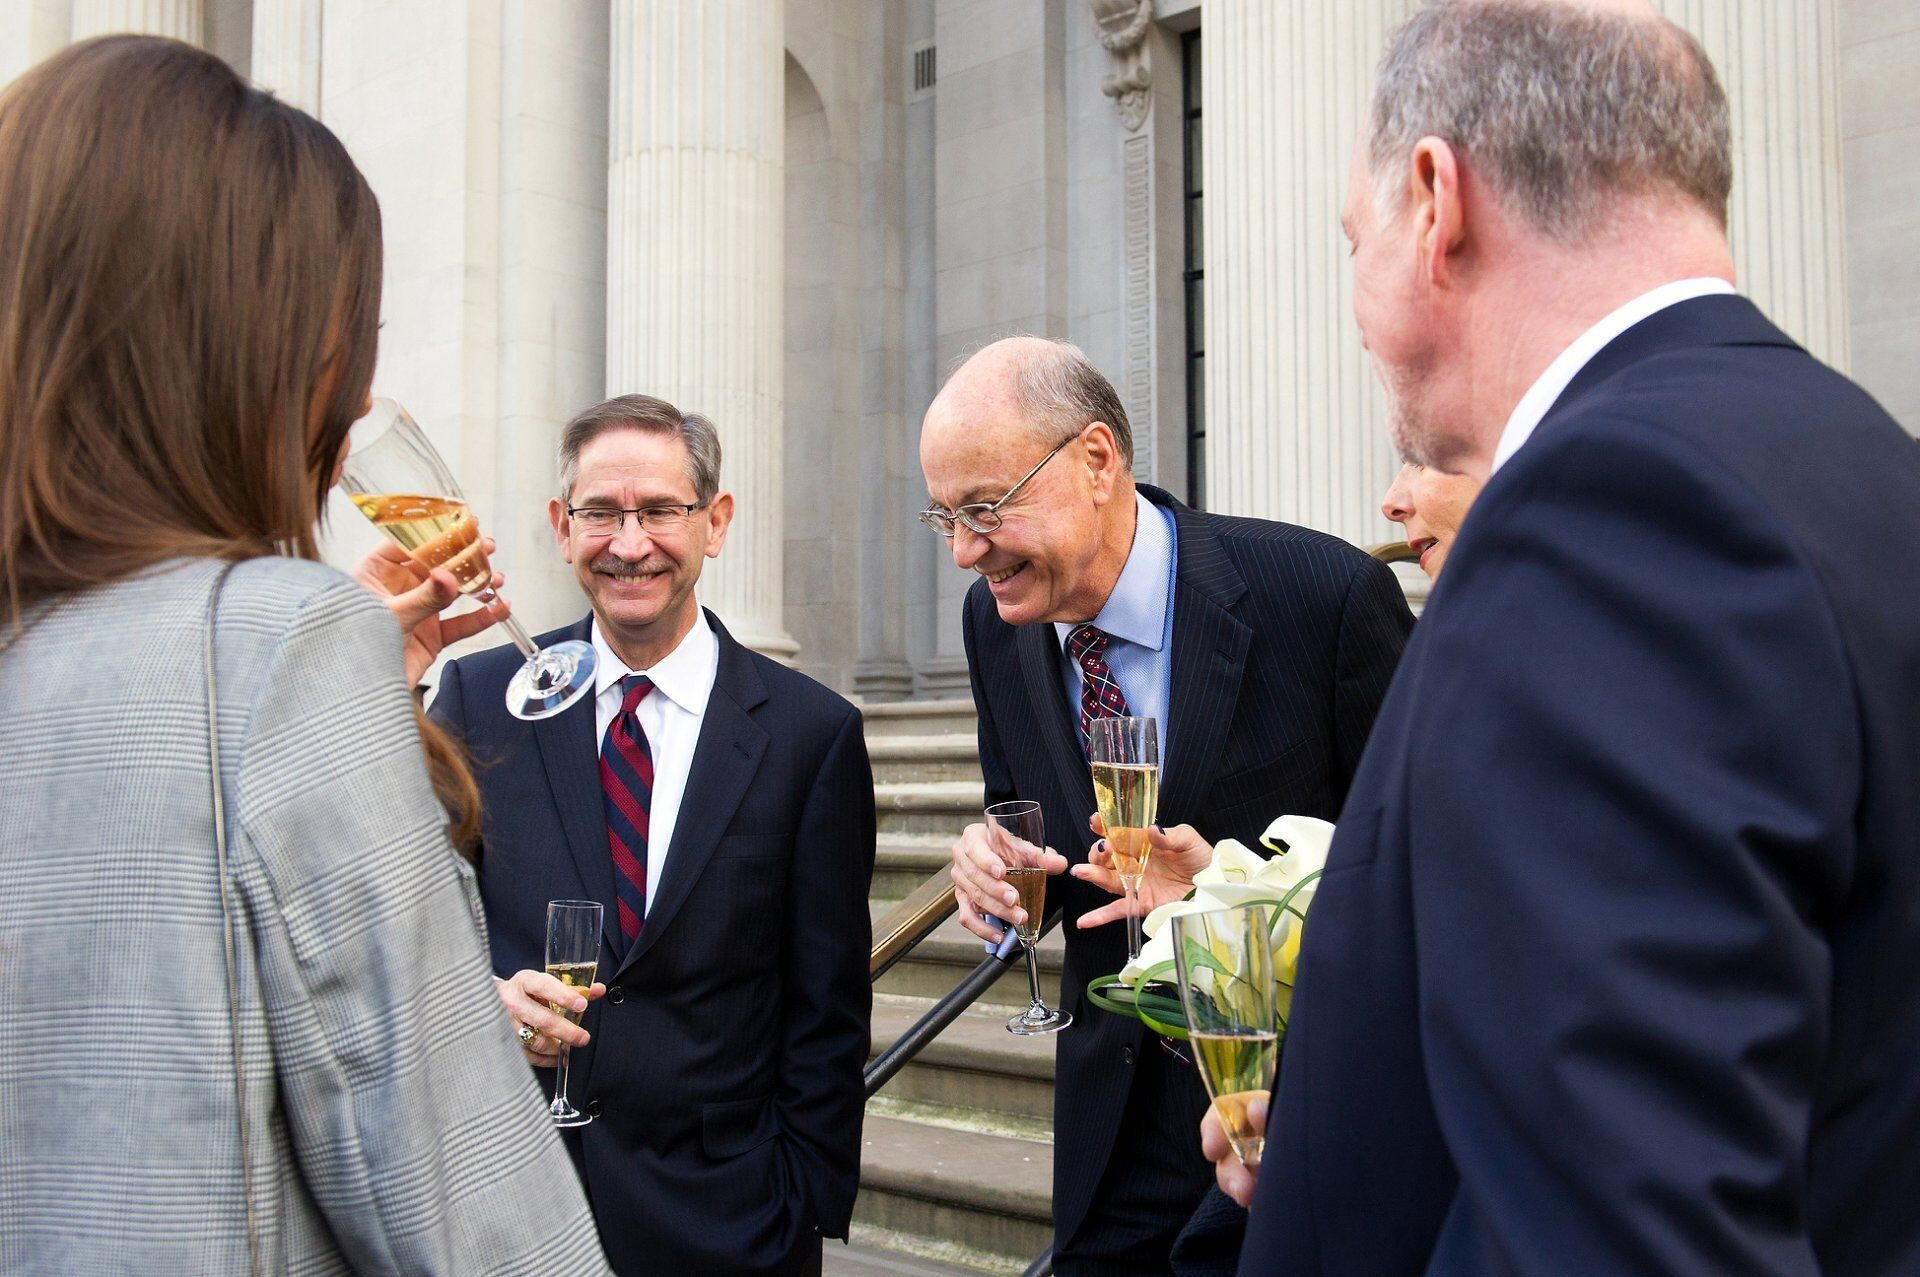 champagne at old marylebone town hall wedding on the iconic steps outside westminster register office